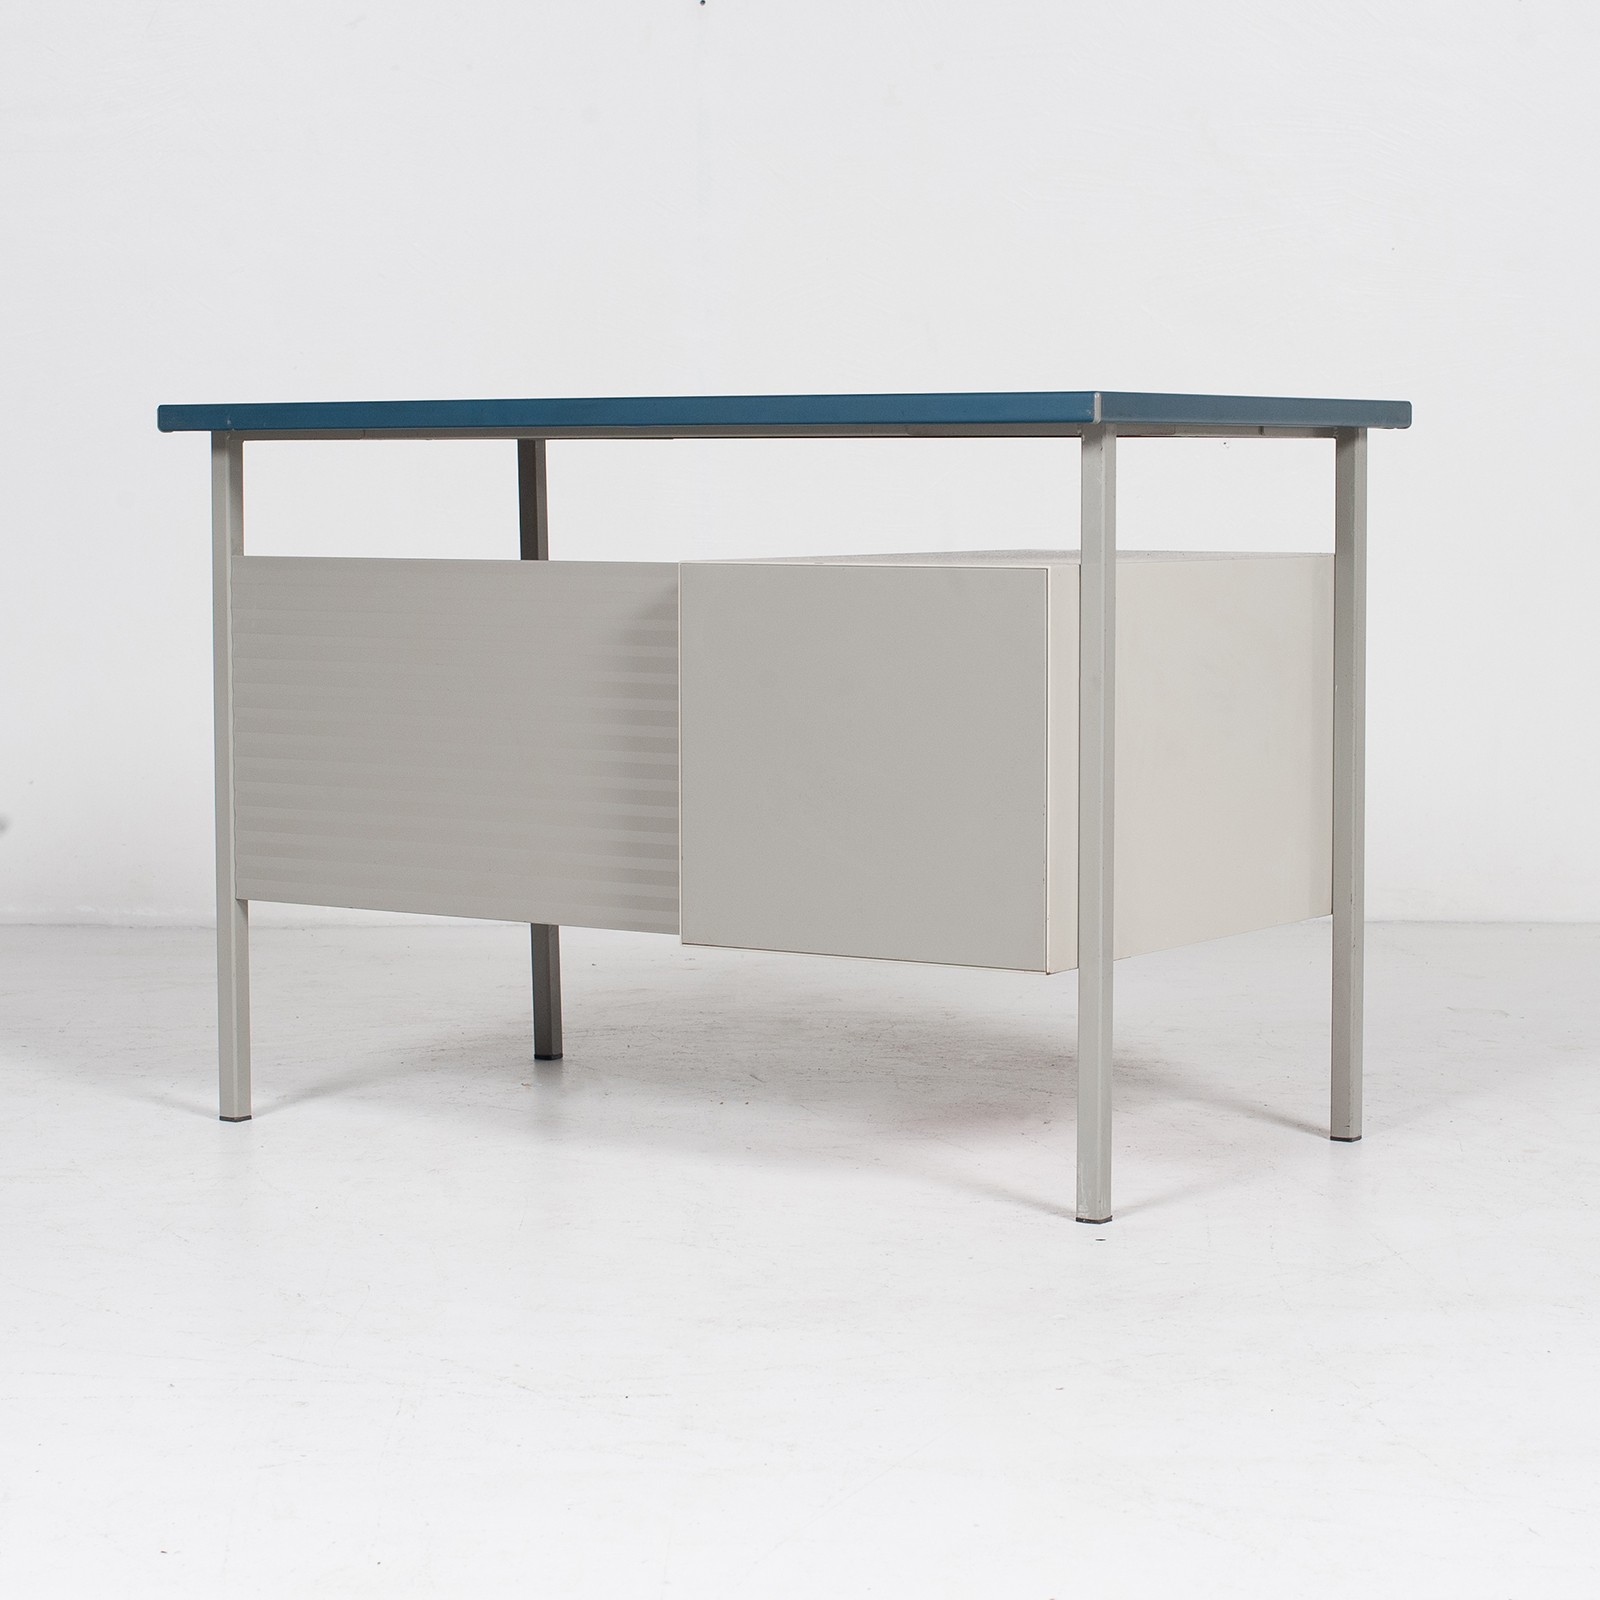 3803 Industrial Desk By Andre Cordemeyer For Gispen With Blue Vinyl Top And Red Enamelled Drawers, 1950s, The Netherlands 50